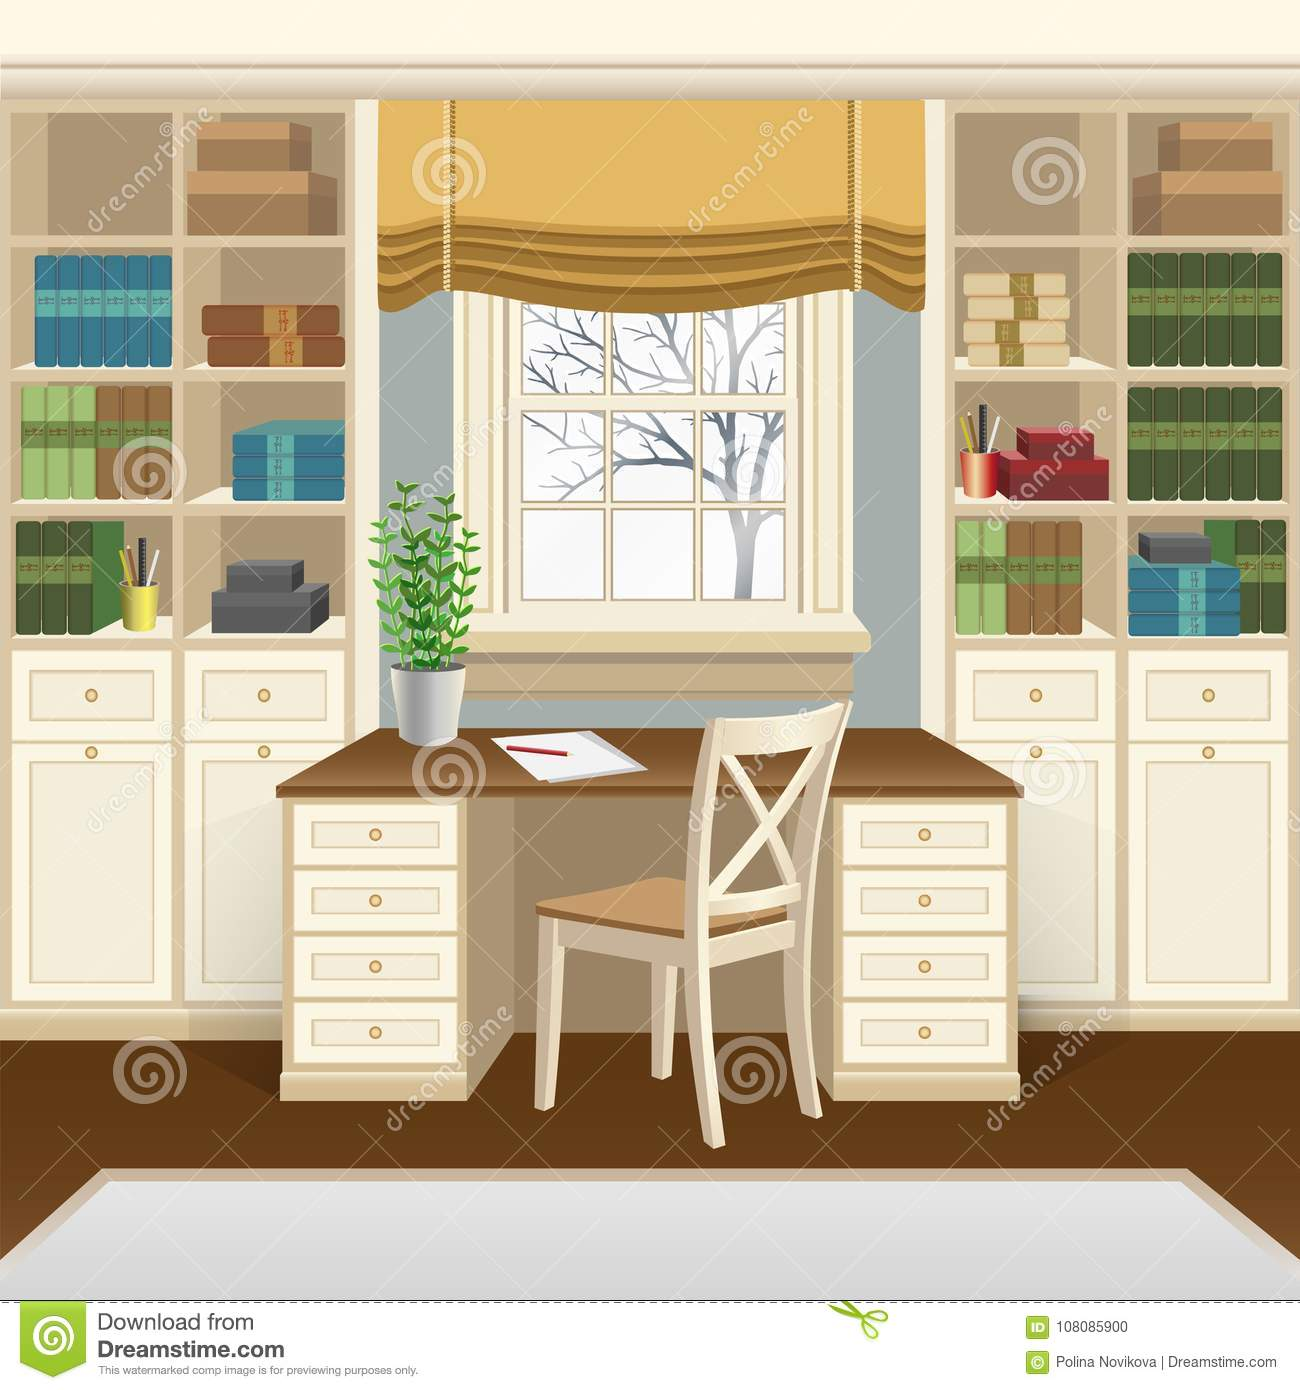 Study Room At Home: Home Office Or Study Room Interior With Table Below The